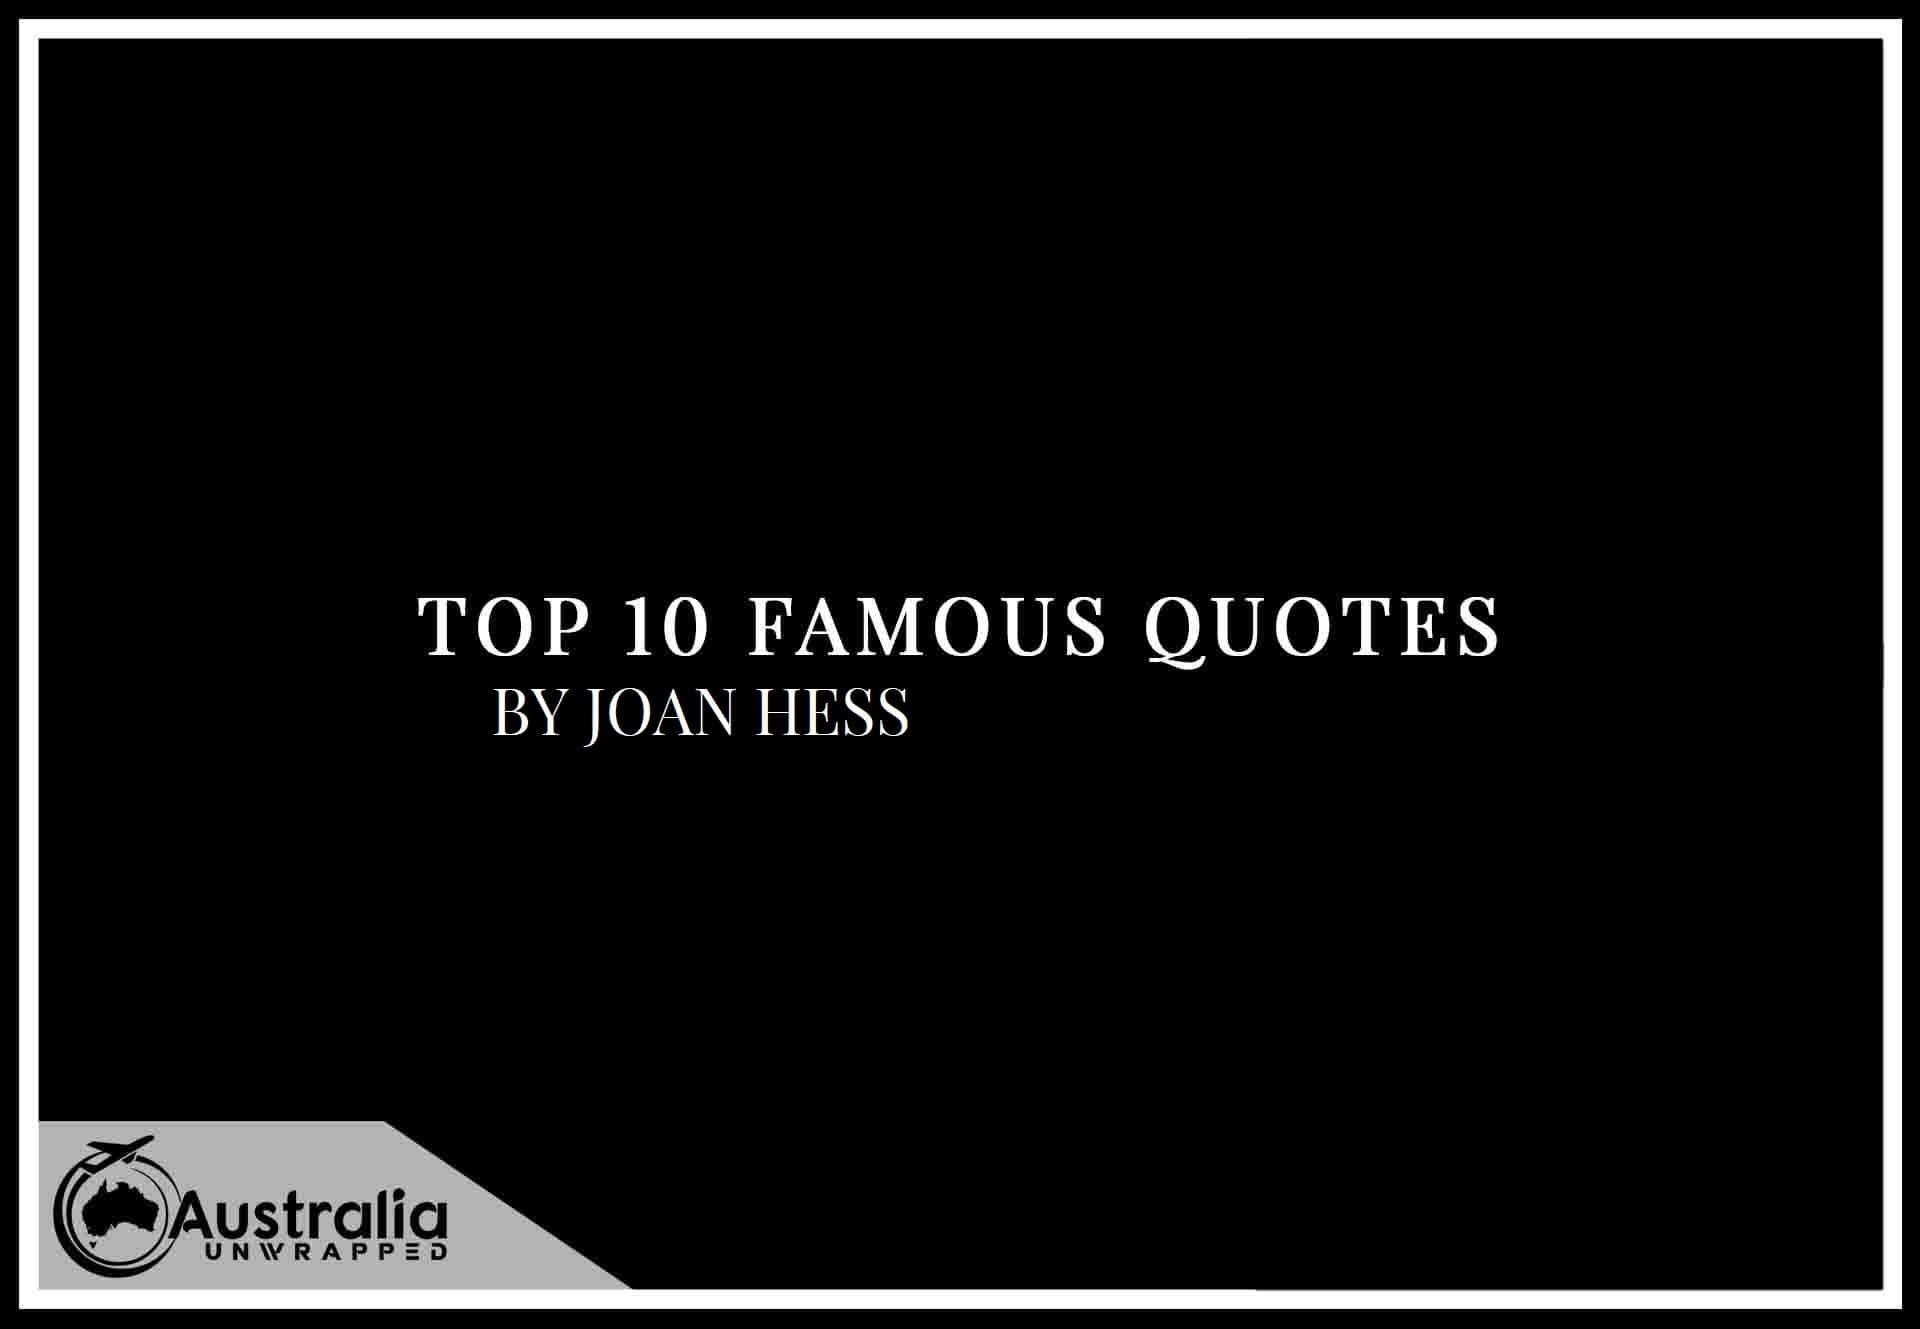 Top 10 Famous Quotes by Author Joan Hess